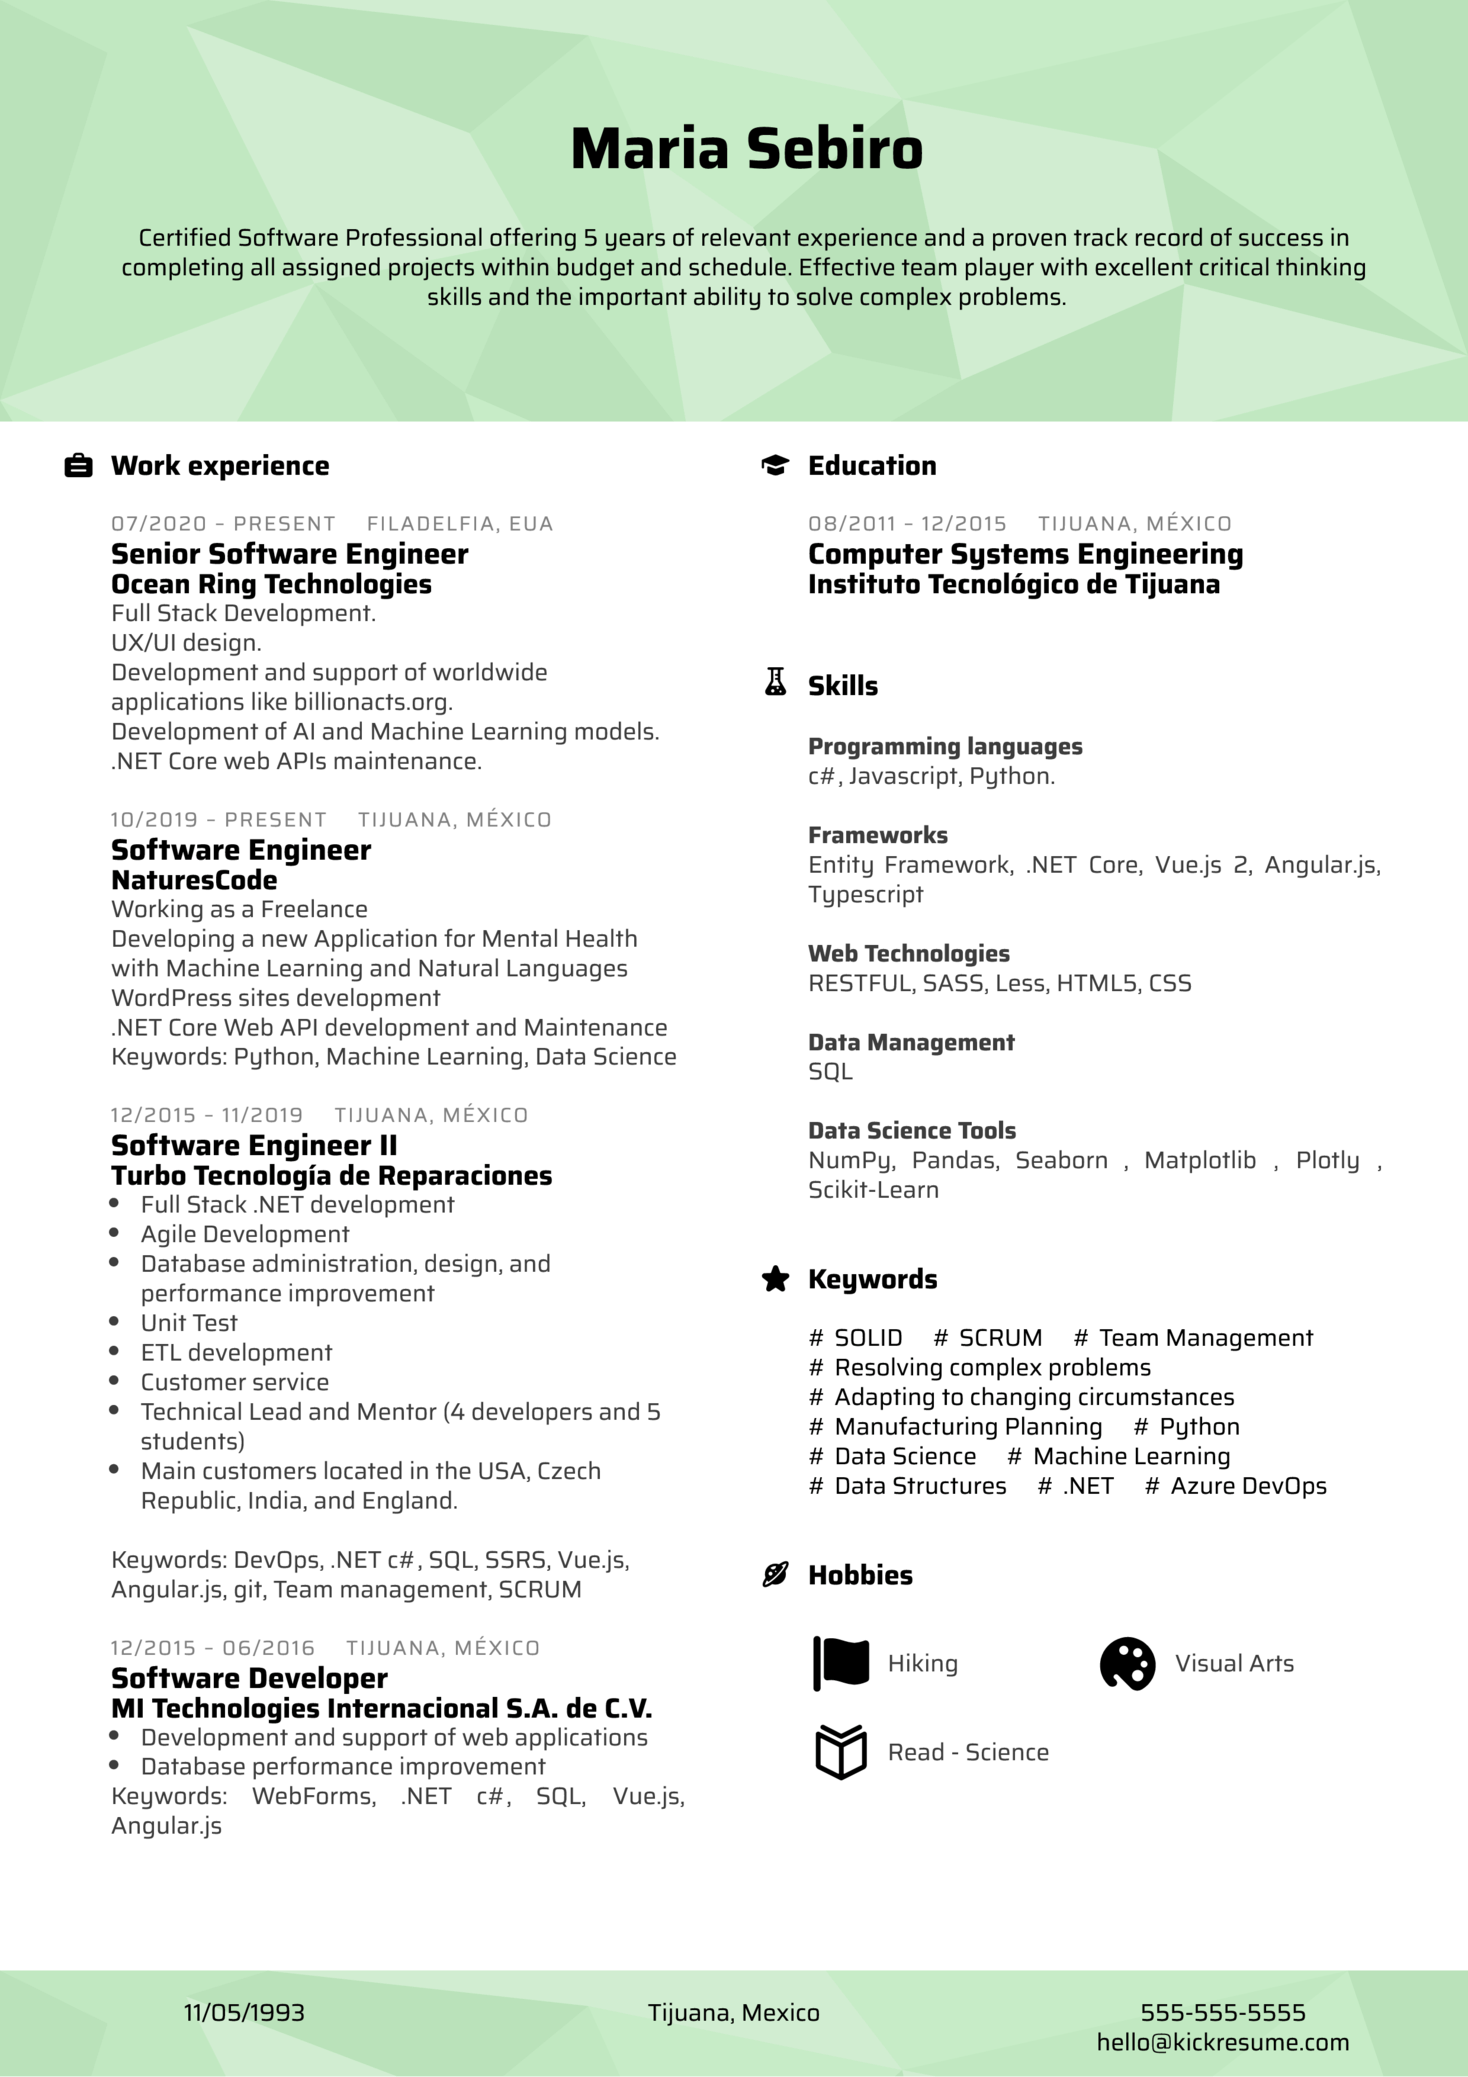 Software Professional at NaturesCode Resume Example